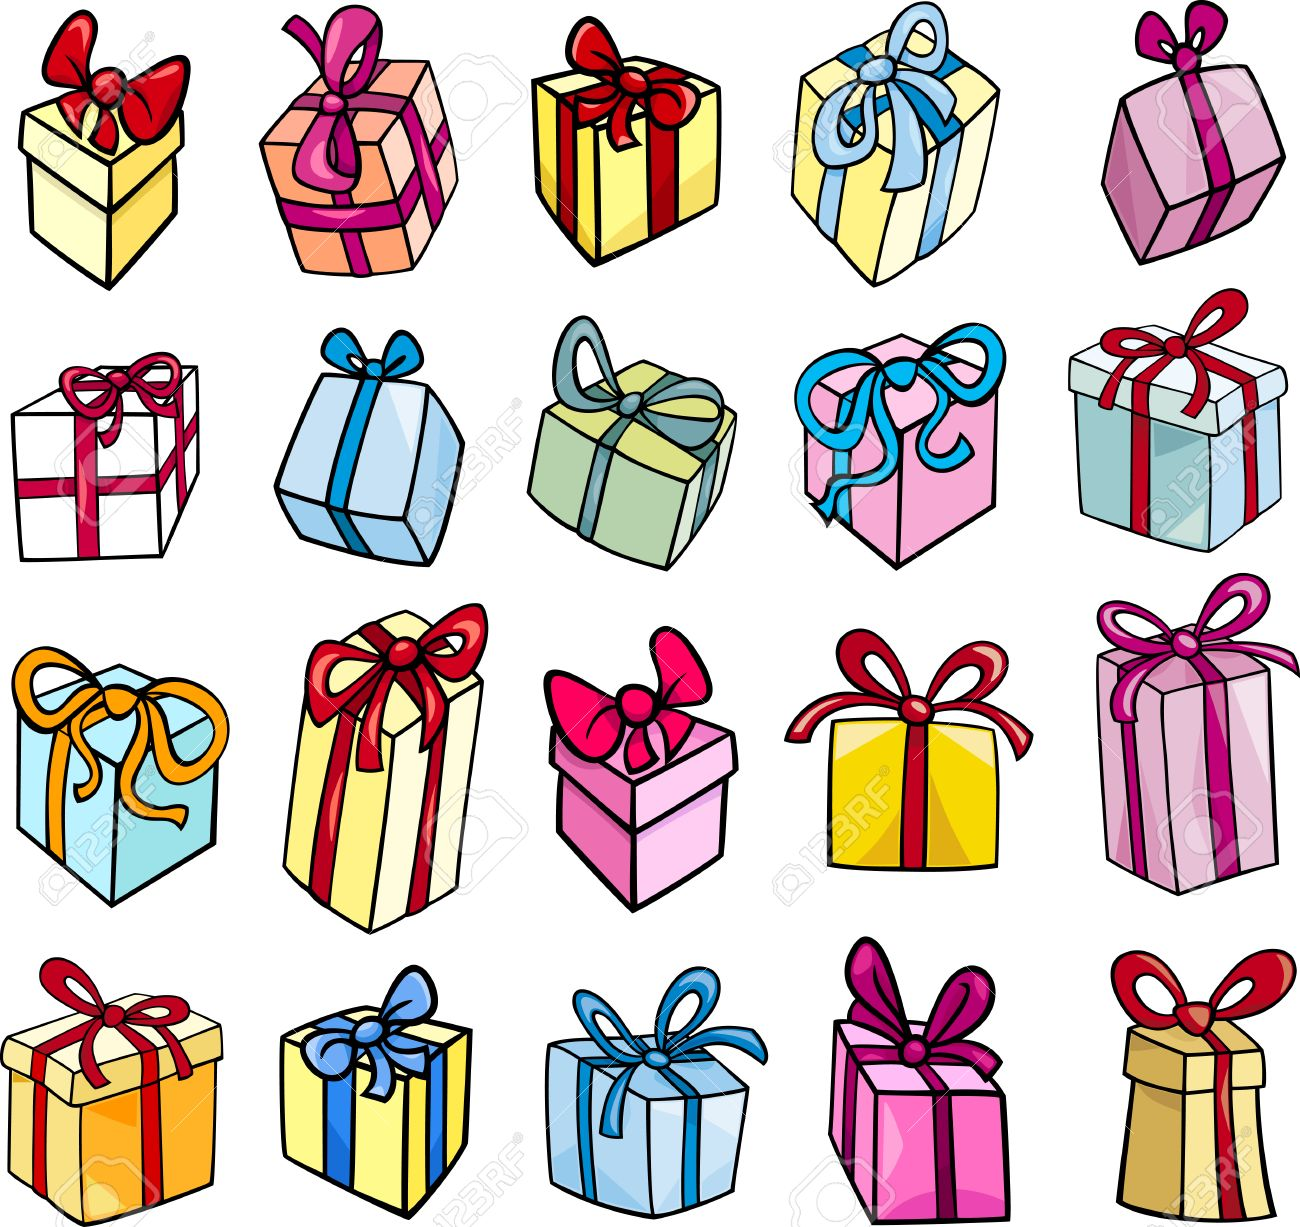 free clipart birthday presents ; 23321328-cartoon-illustration-of-christmas-or-birthday-presents-or-gifts-objects-clip-art-set